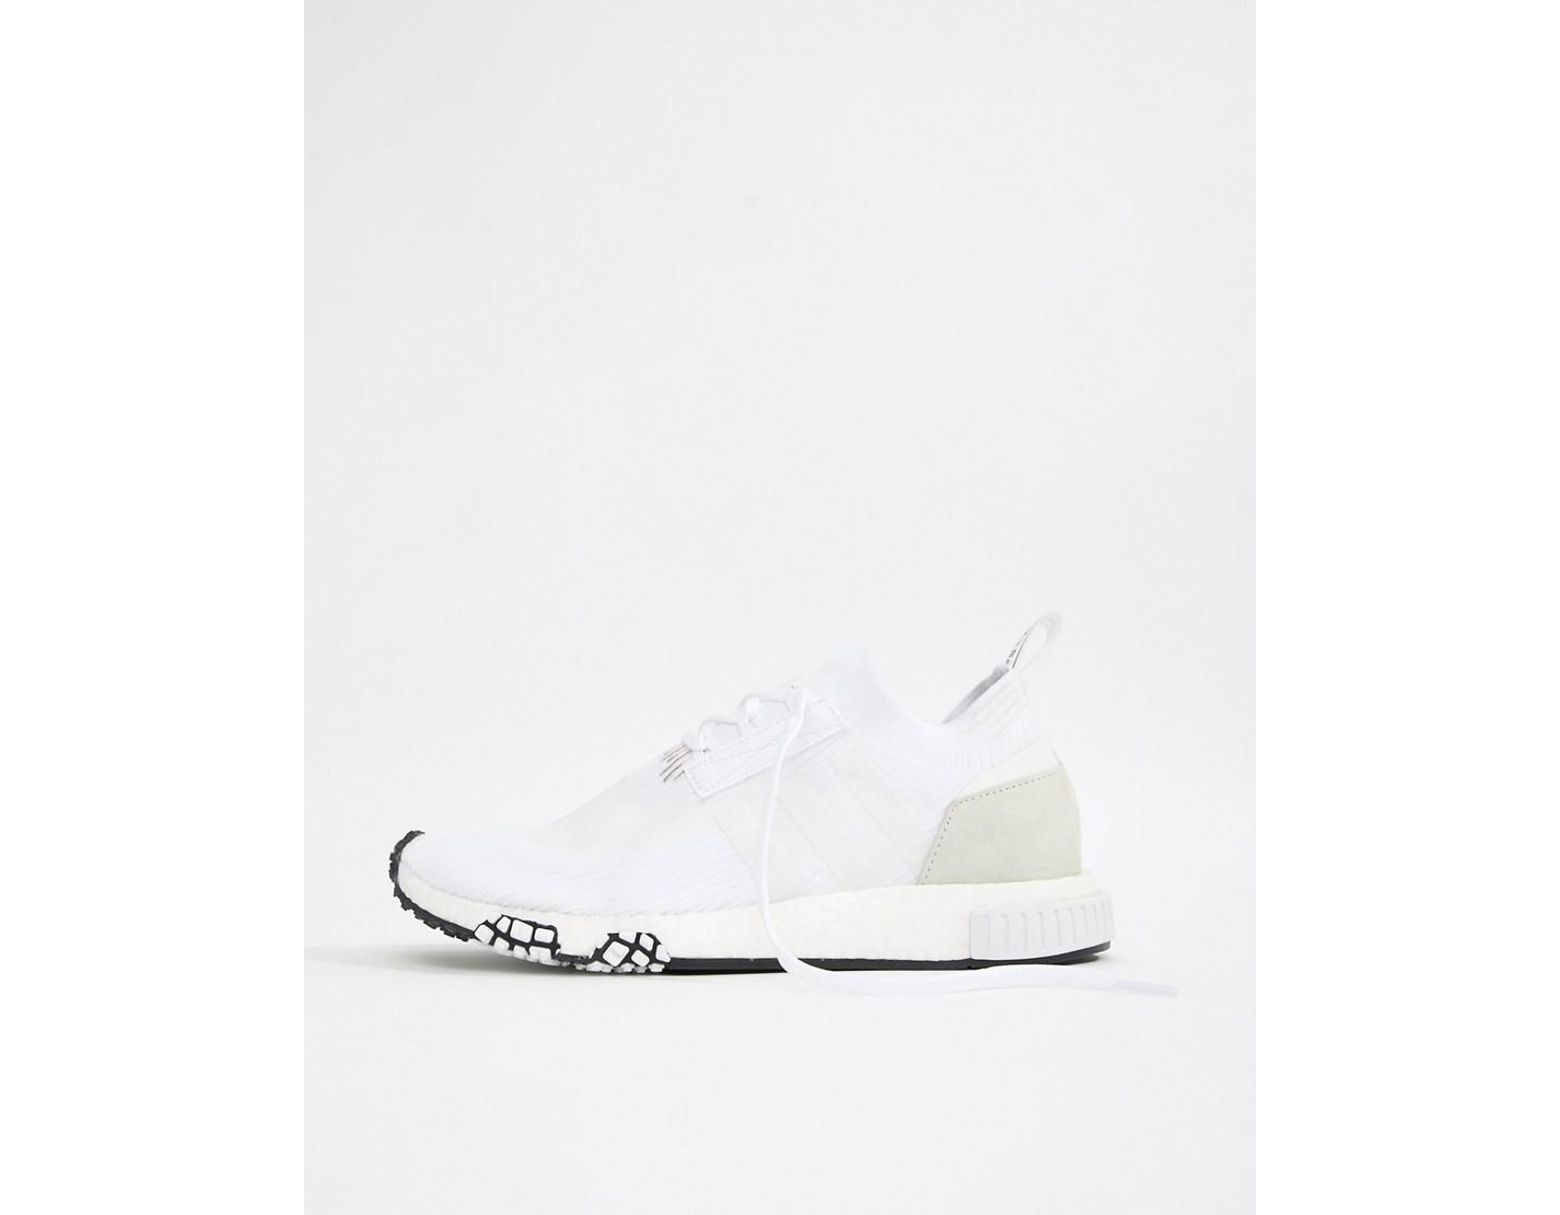 df620c86b7a01 Lyst - adidas Originals Nmd Racer Pk Sneakers In White B37639 in White for  Men